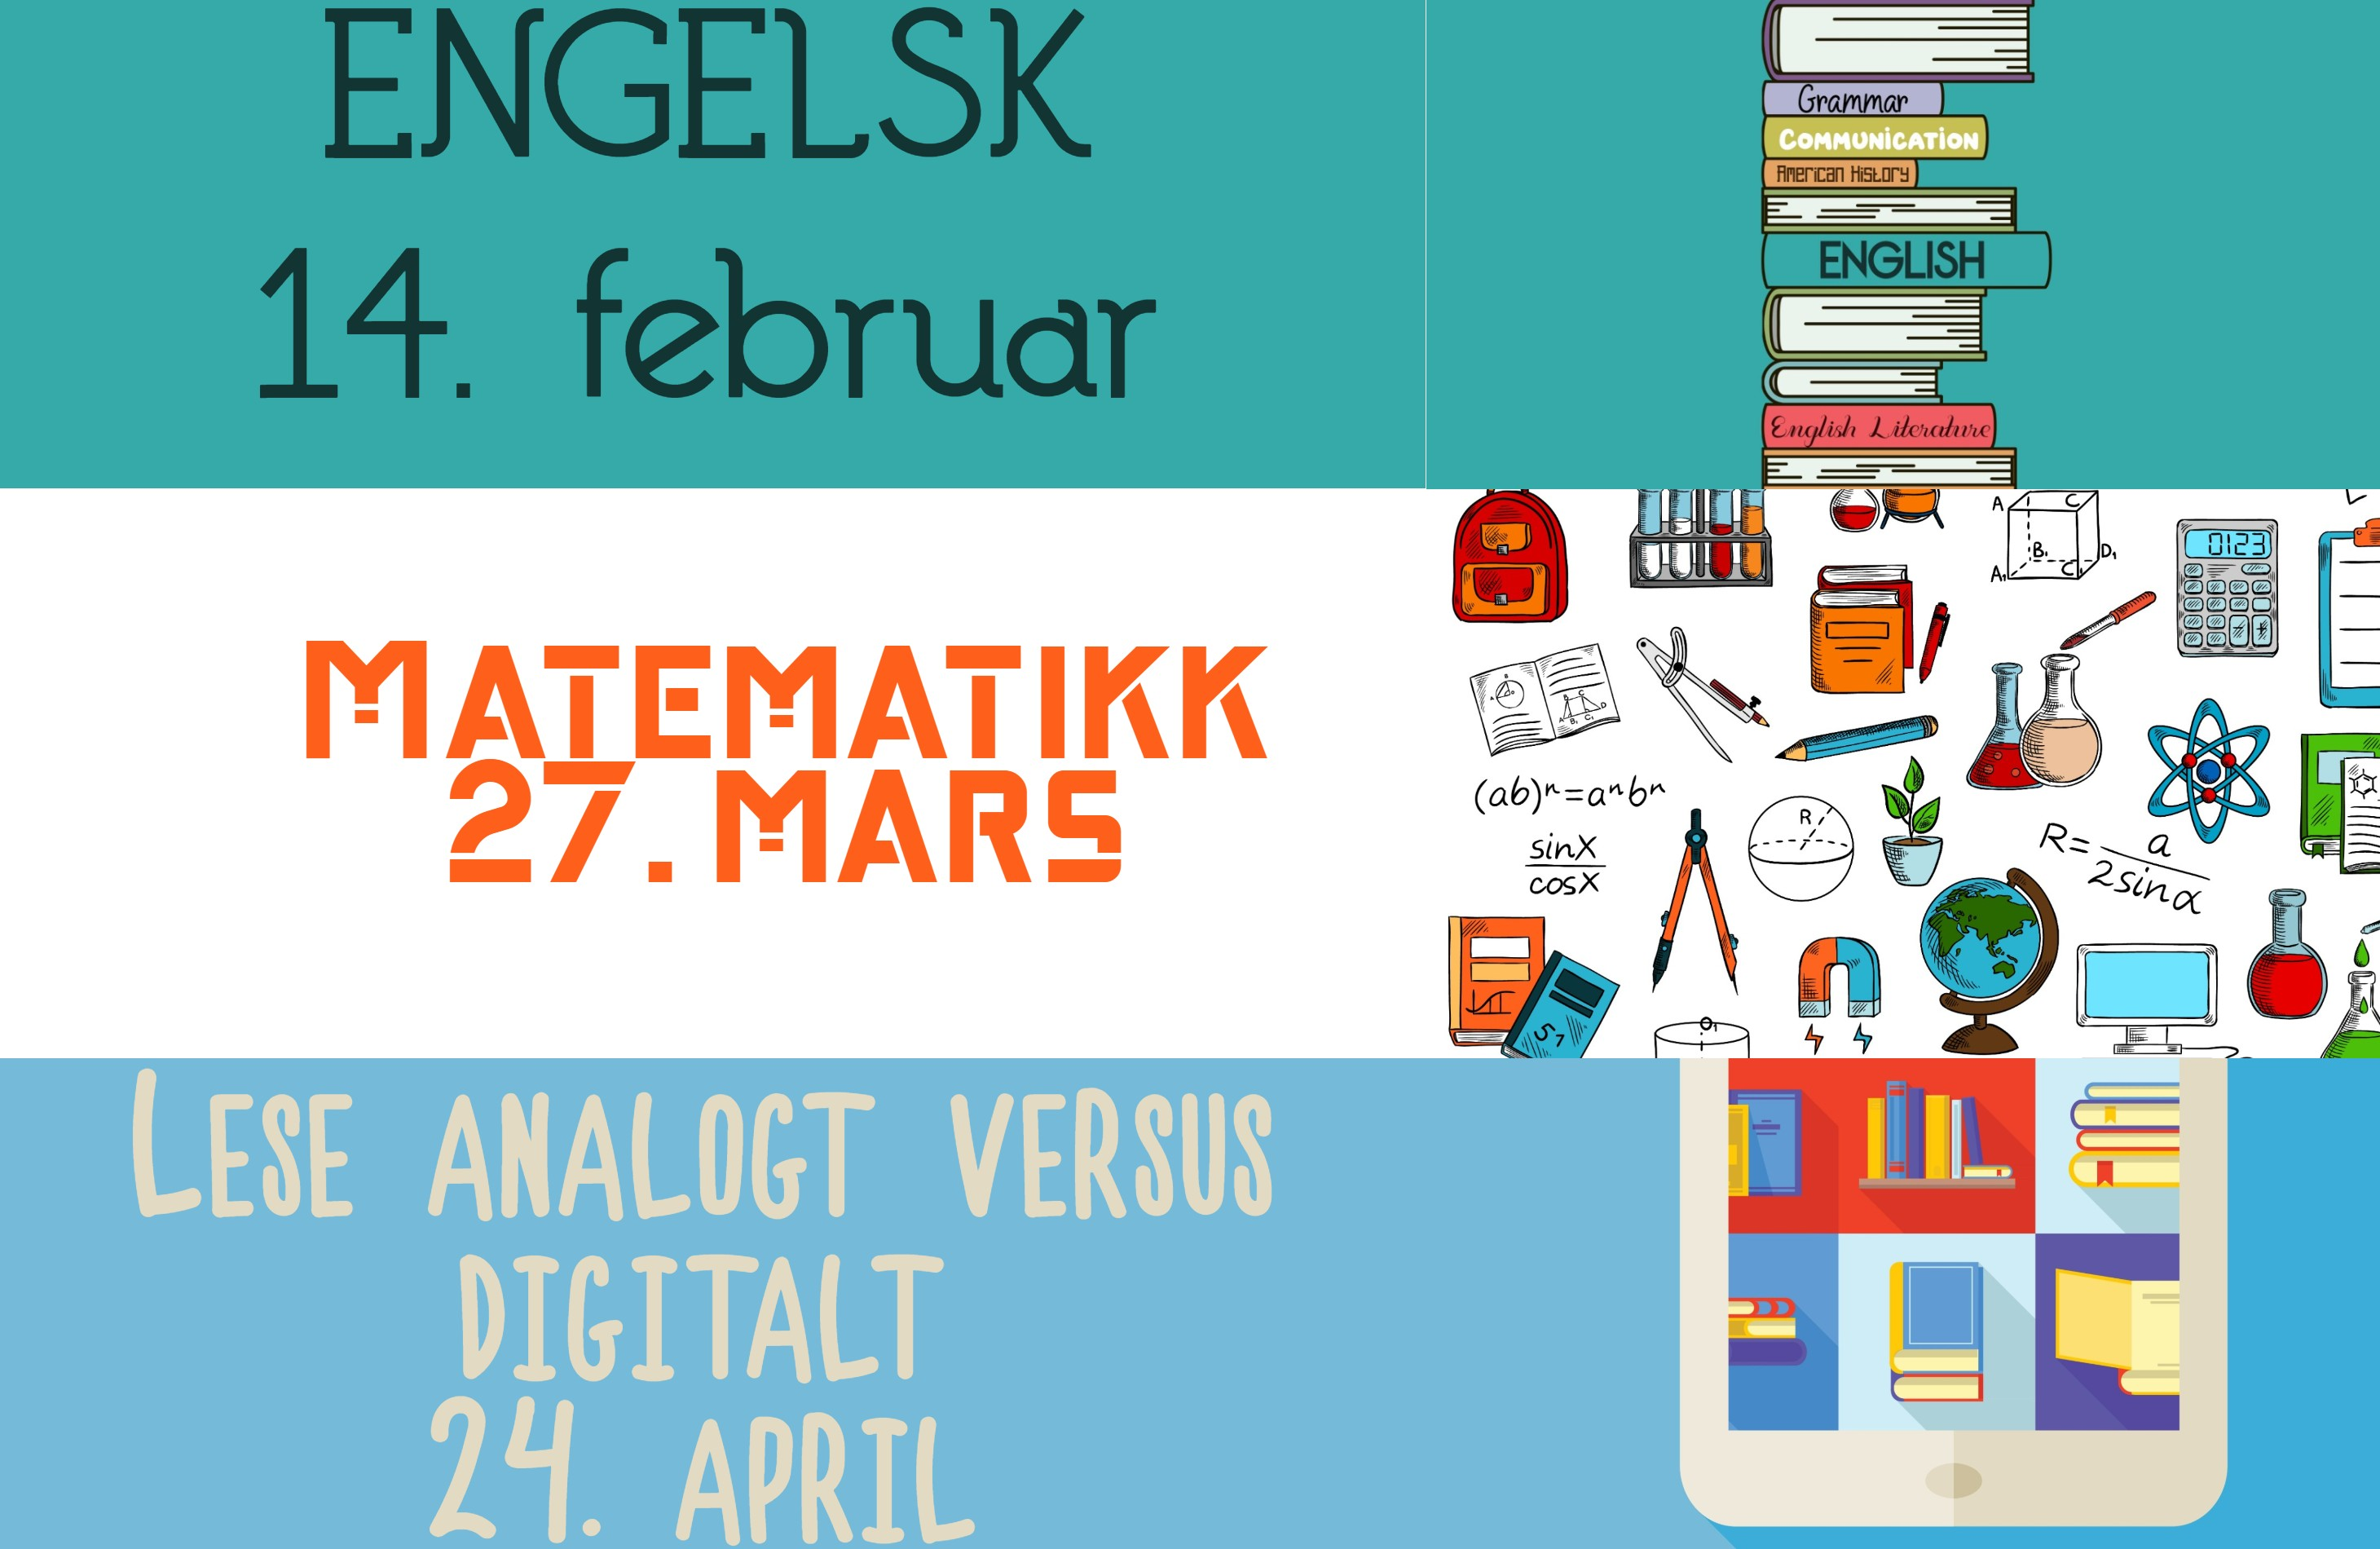 Datoer for faglig frokost. 14. februar, 27. mars og 24. april